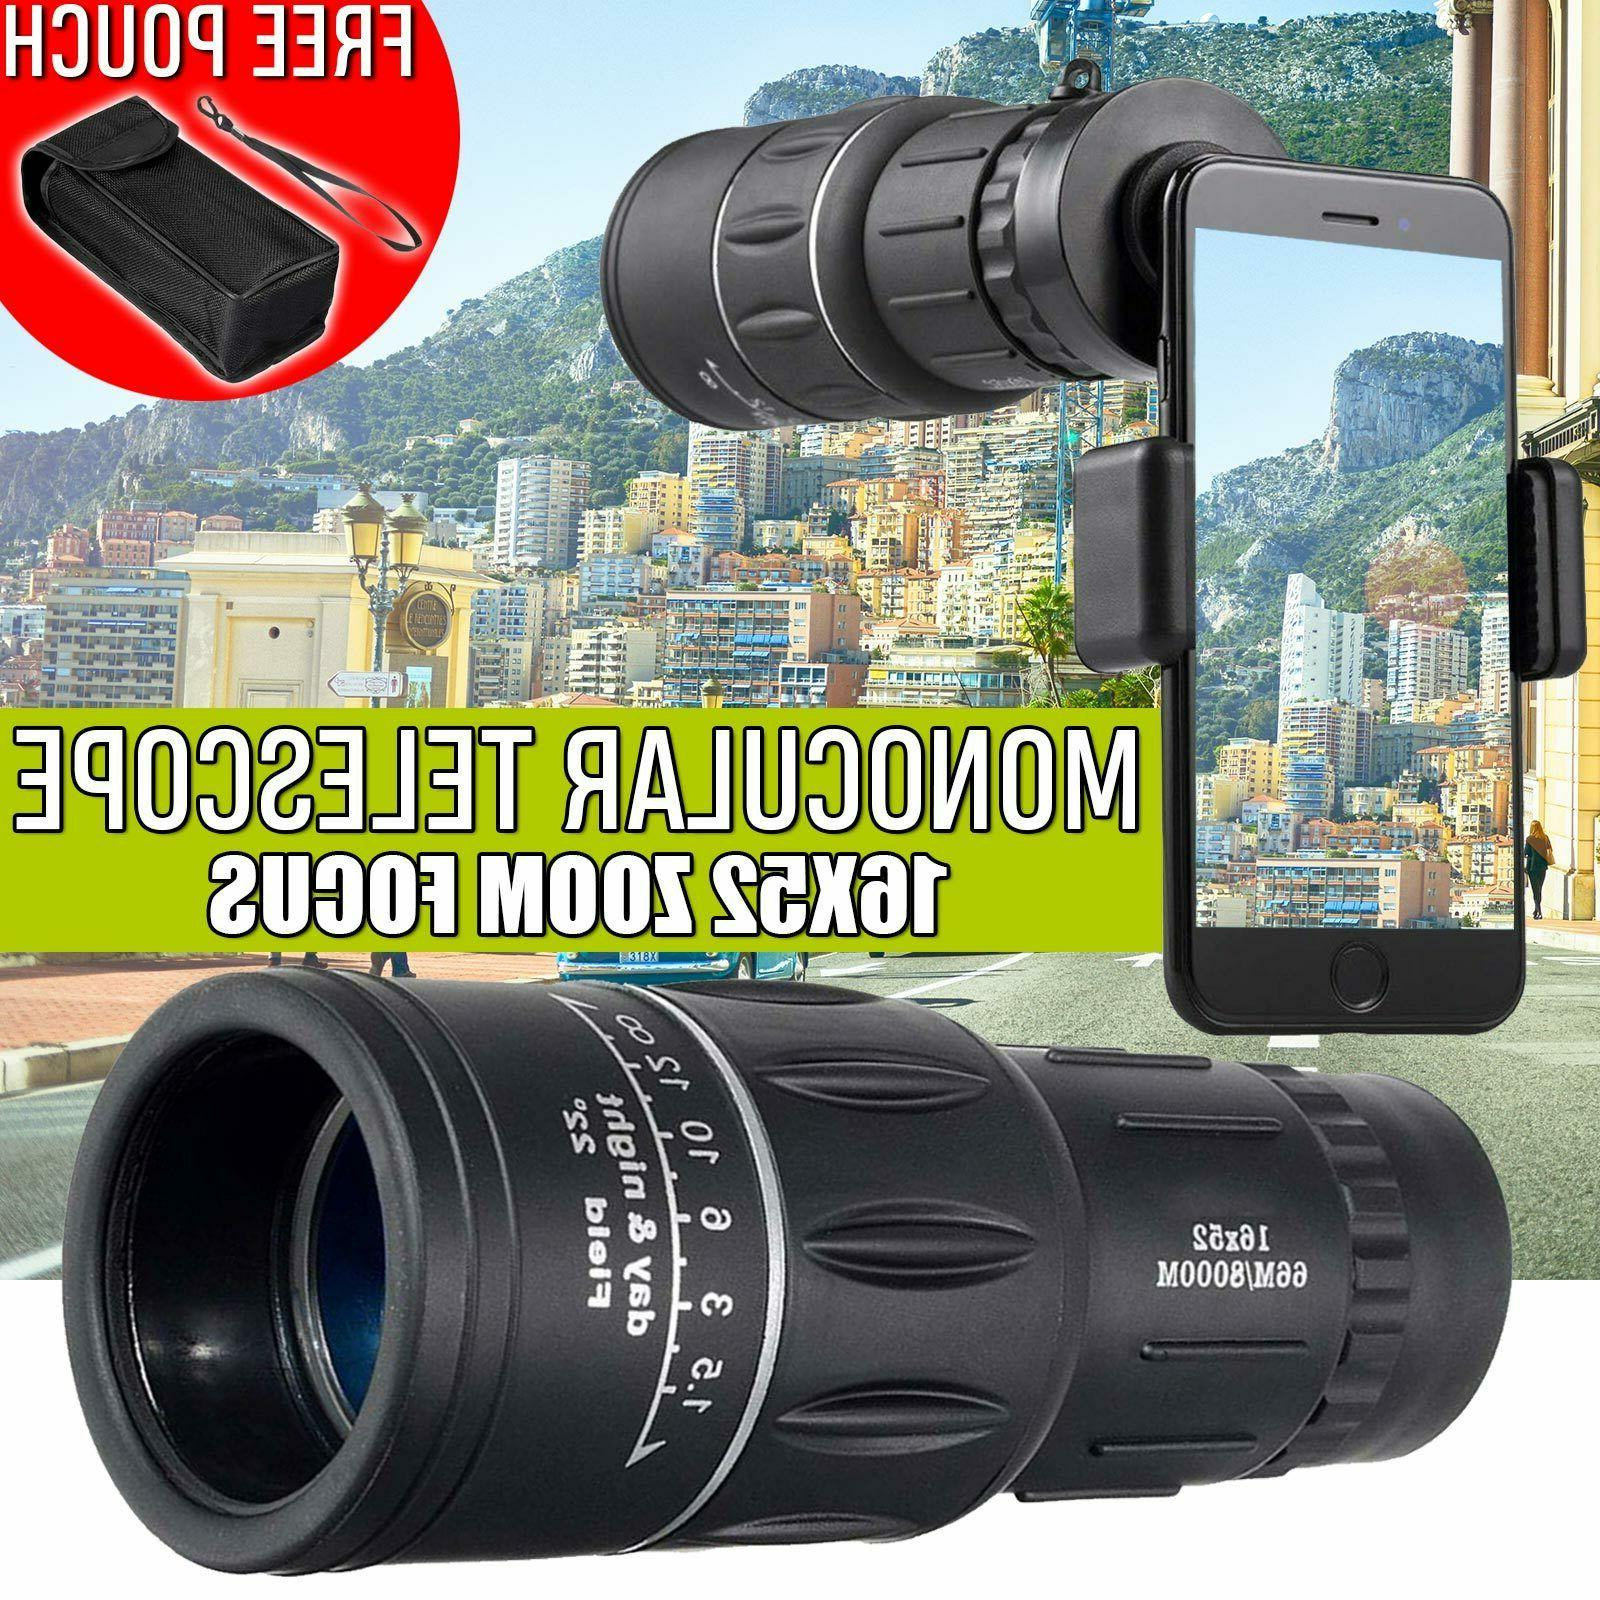 new day night vision 16x52 hd optical